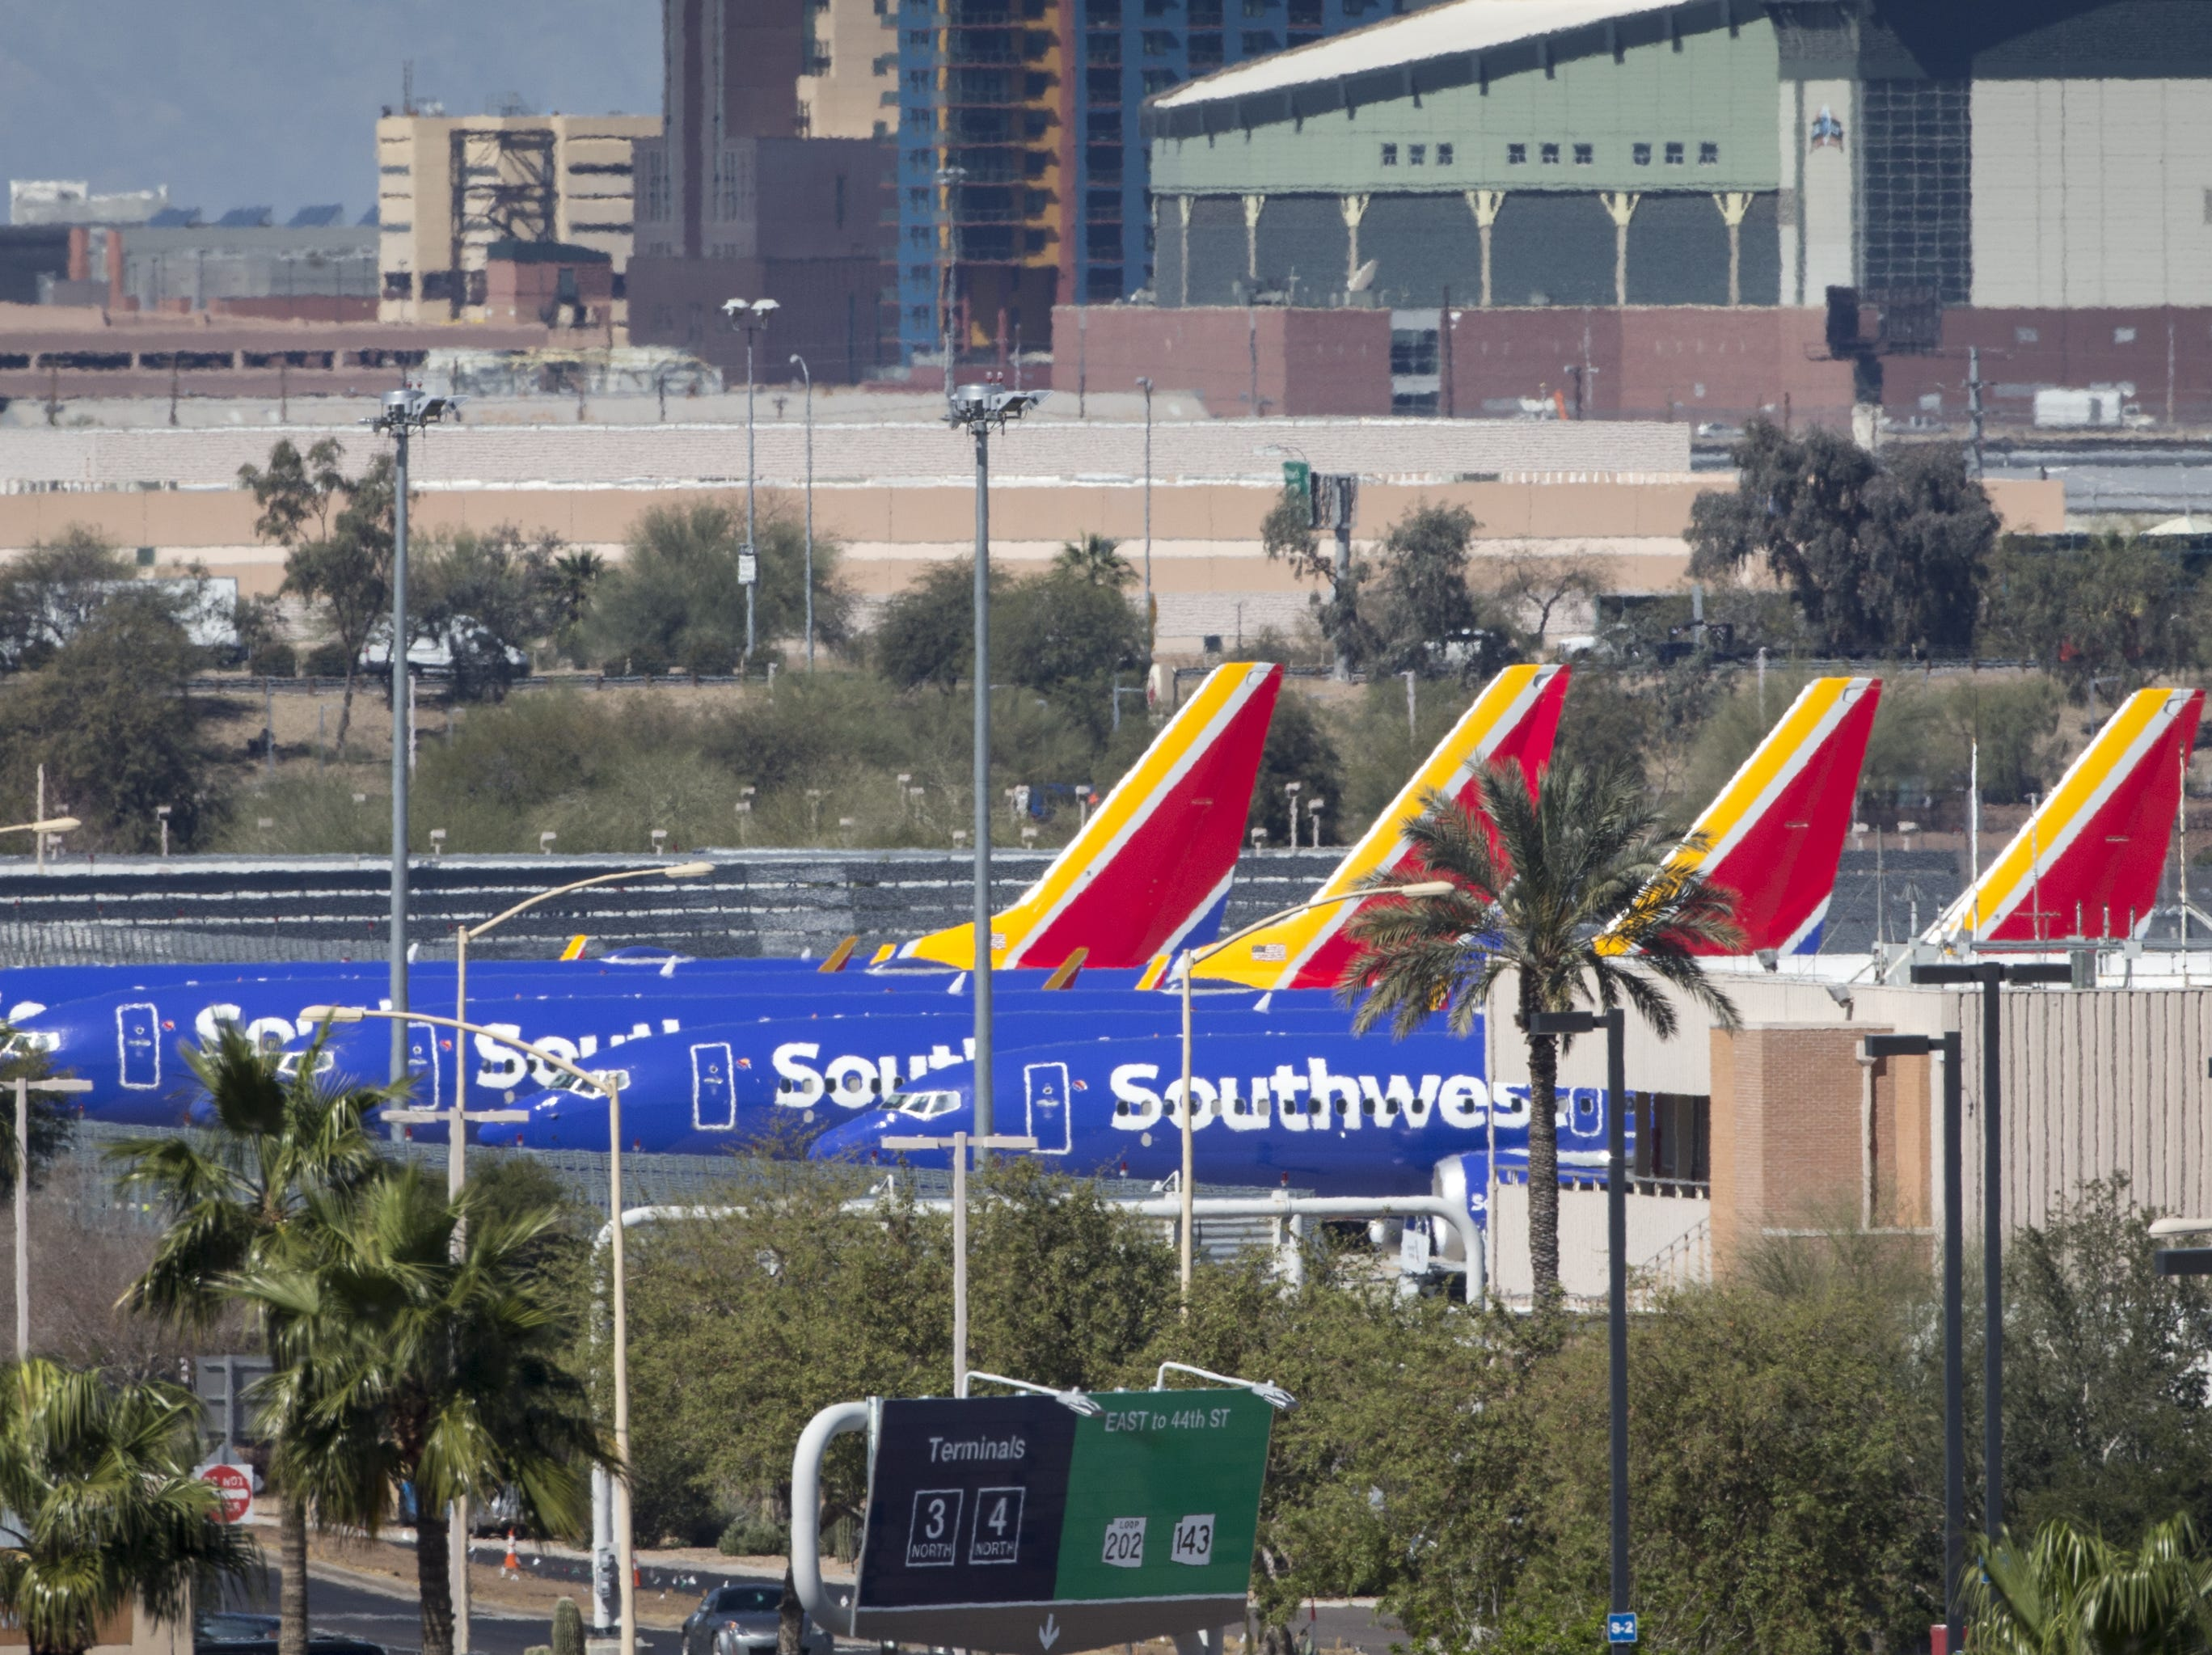 Boeing 737 MAX 8 aircraft on the tarmac March 14, 2019, at Phoenix Sky Harbor International Airport..